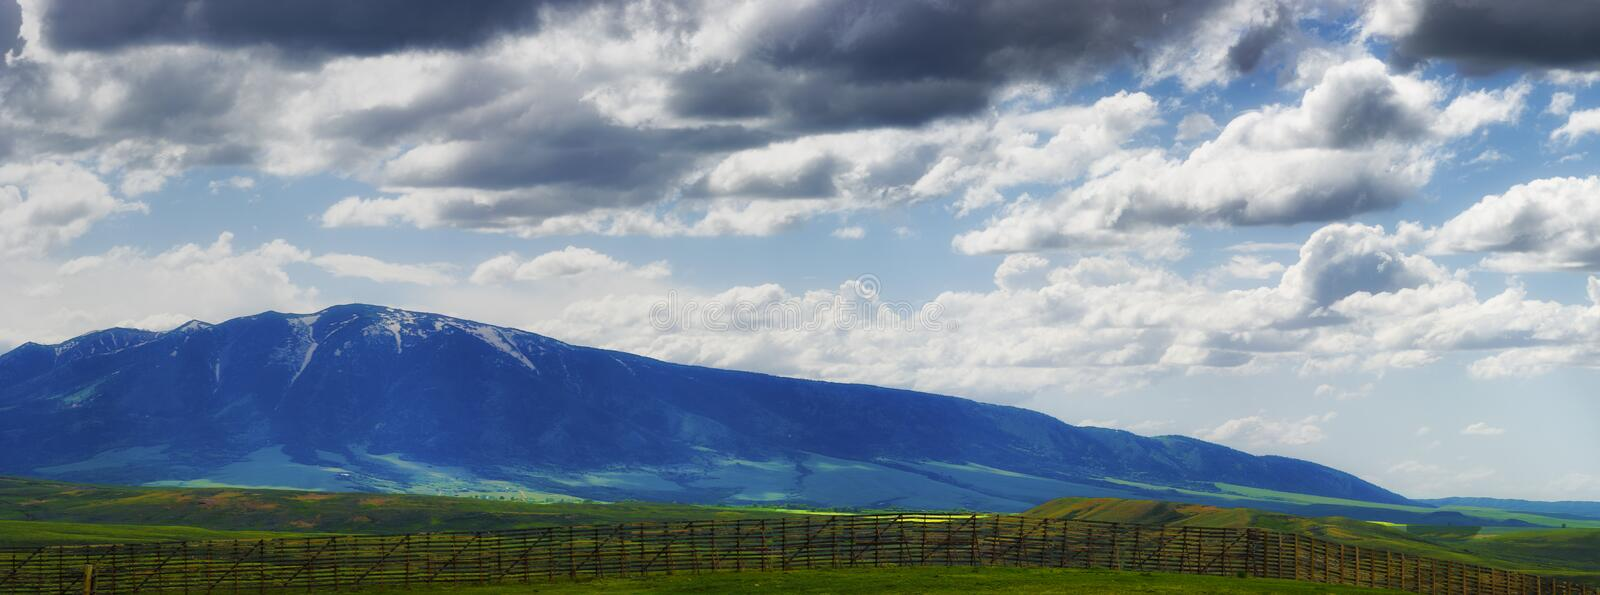 Wyoming Vast Landscape under dark clouds royalty free stock images